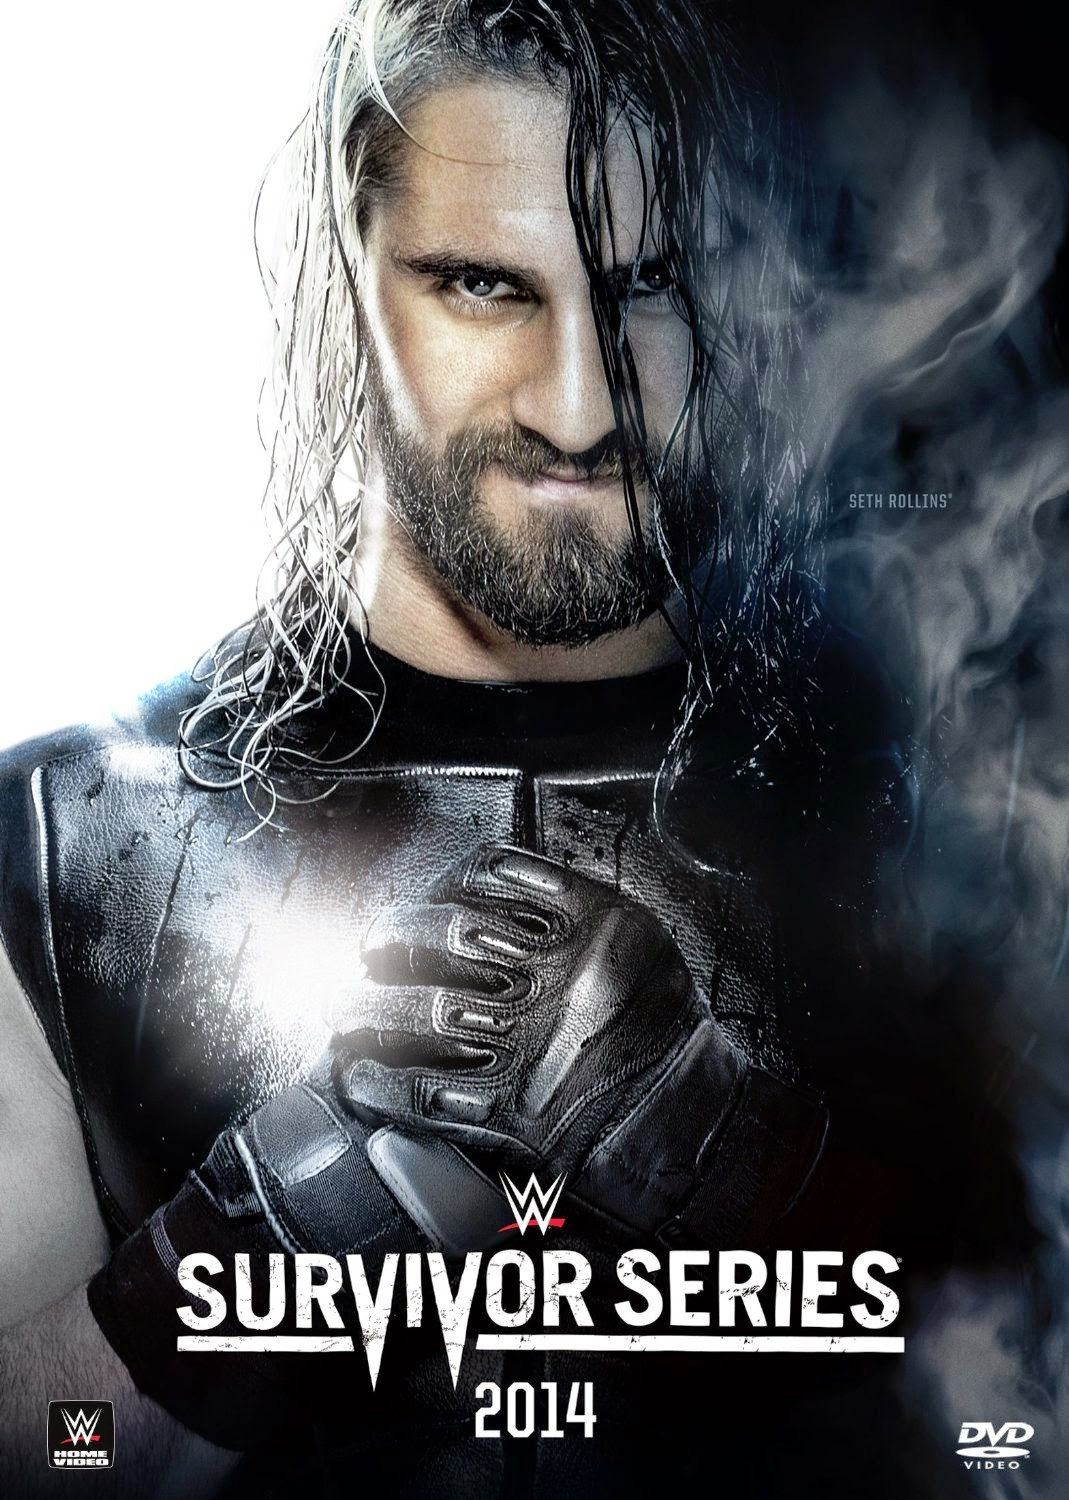 Image - Survivor Series 2014 Official Poster Firstlook (feat. Seth Rollins)